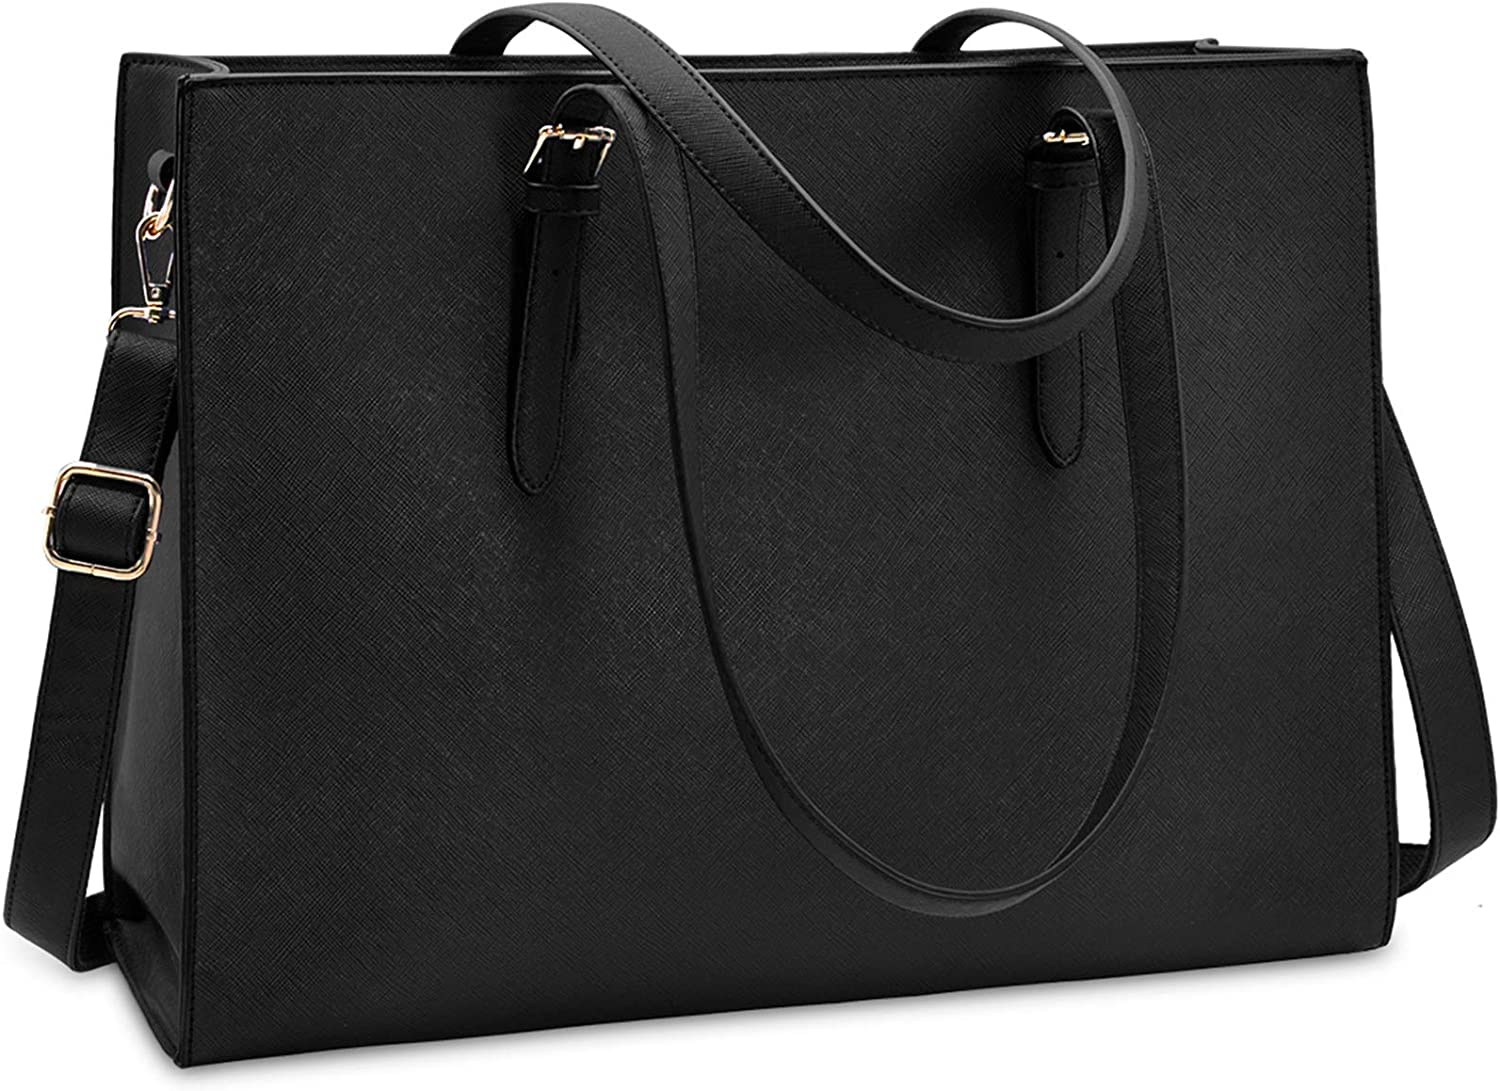 Business Style Shoulder Bag  Carrying Bag Stay Healthy